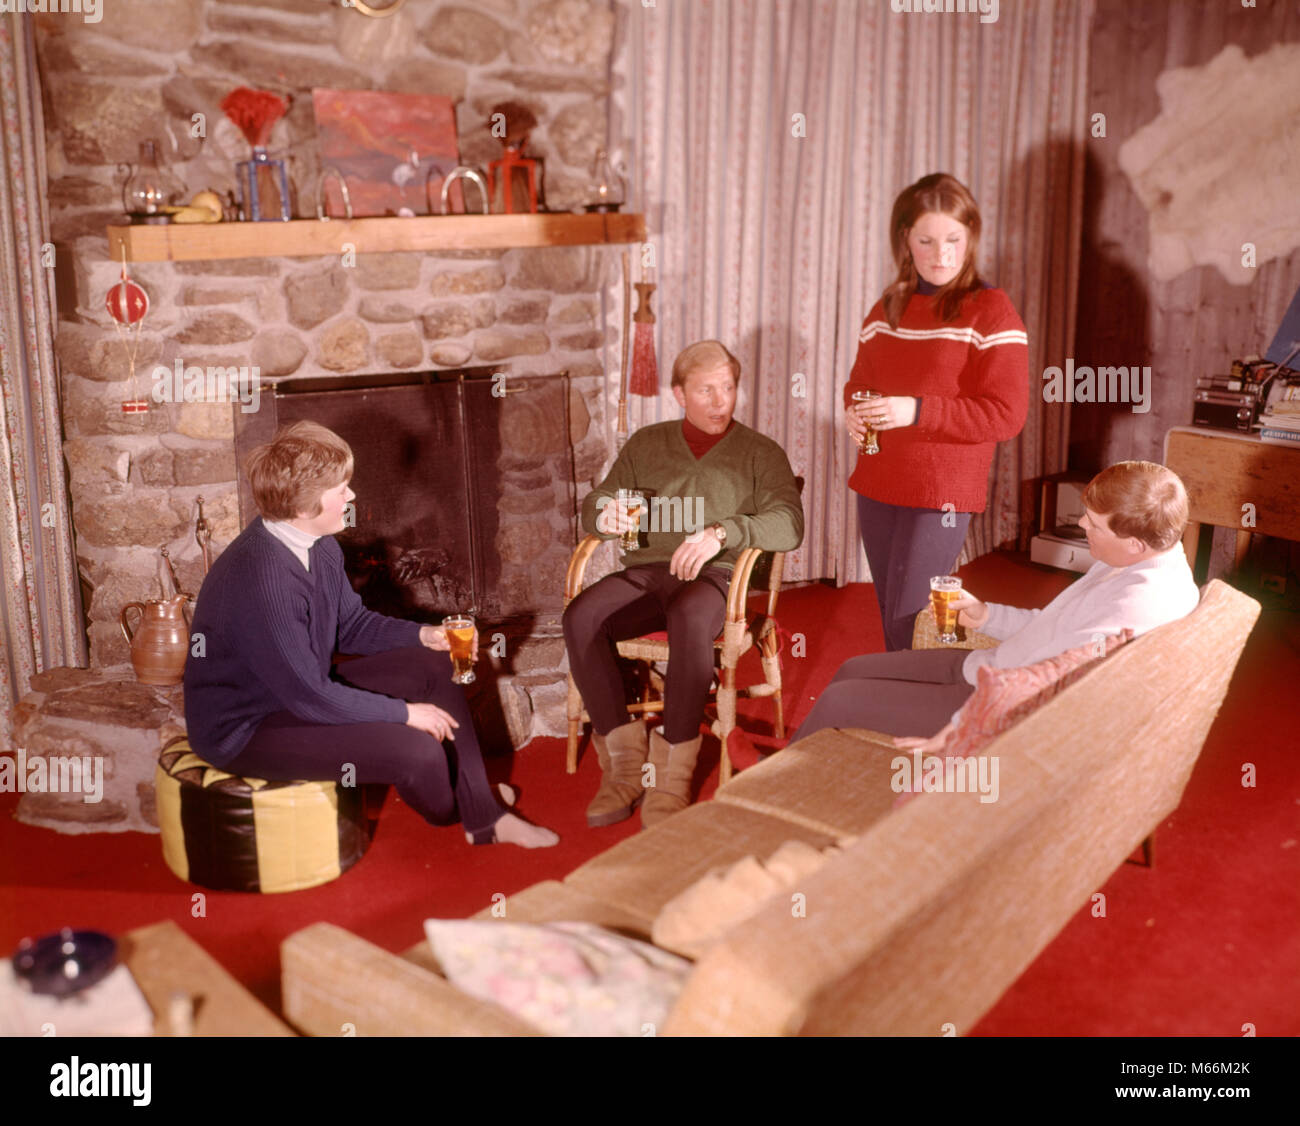 Couple Relaxing In Front Of Fireplace Man Looking At Woman Stock Married Couple 1960s Stock Photos & Married Couple 1960s